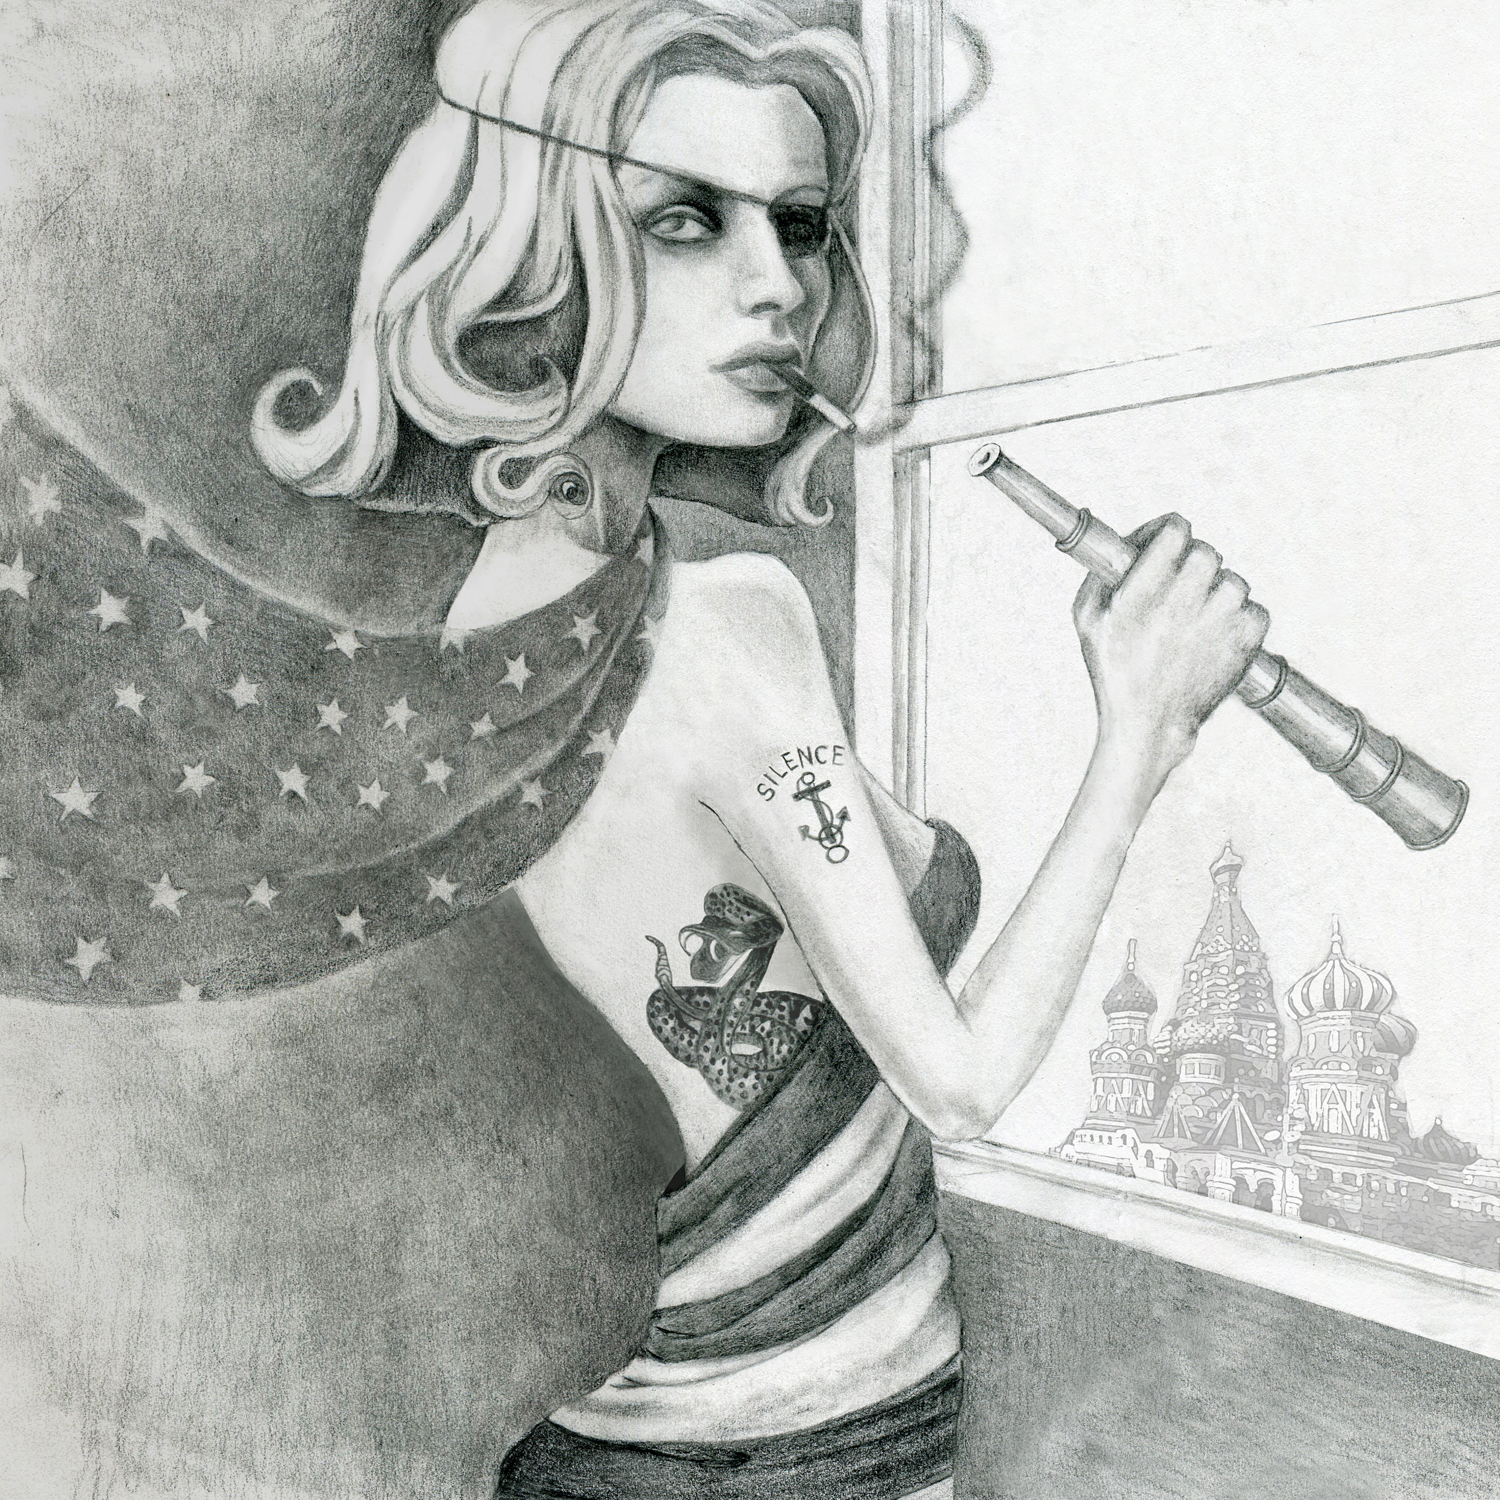 woman wearing an eye patch who's smoking and has an anchor tattoo on her arm is holding a telescope while standing near a window